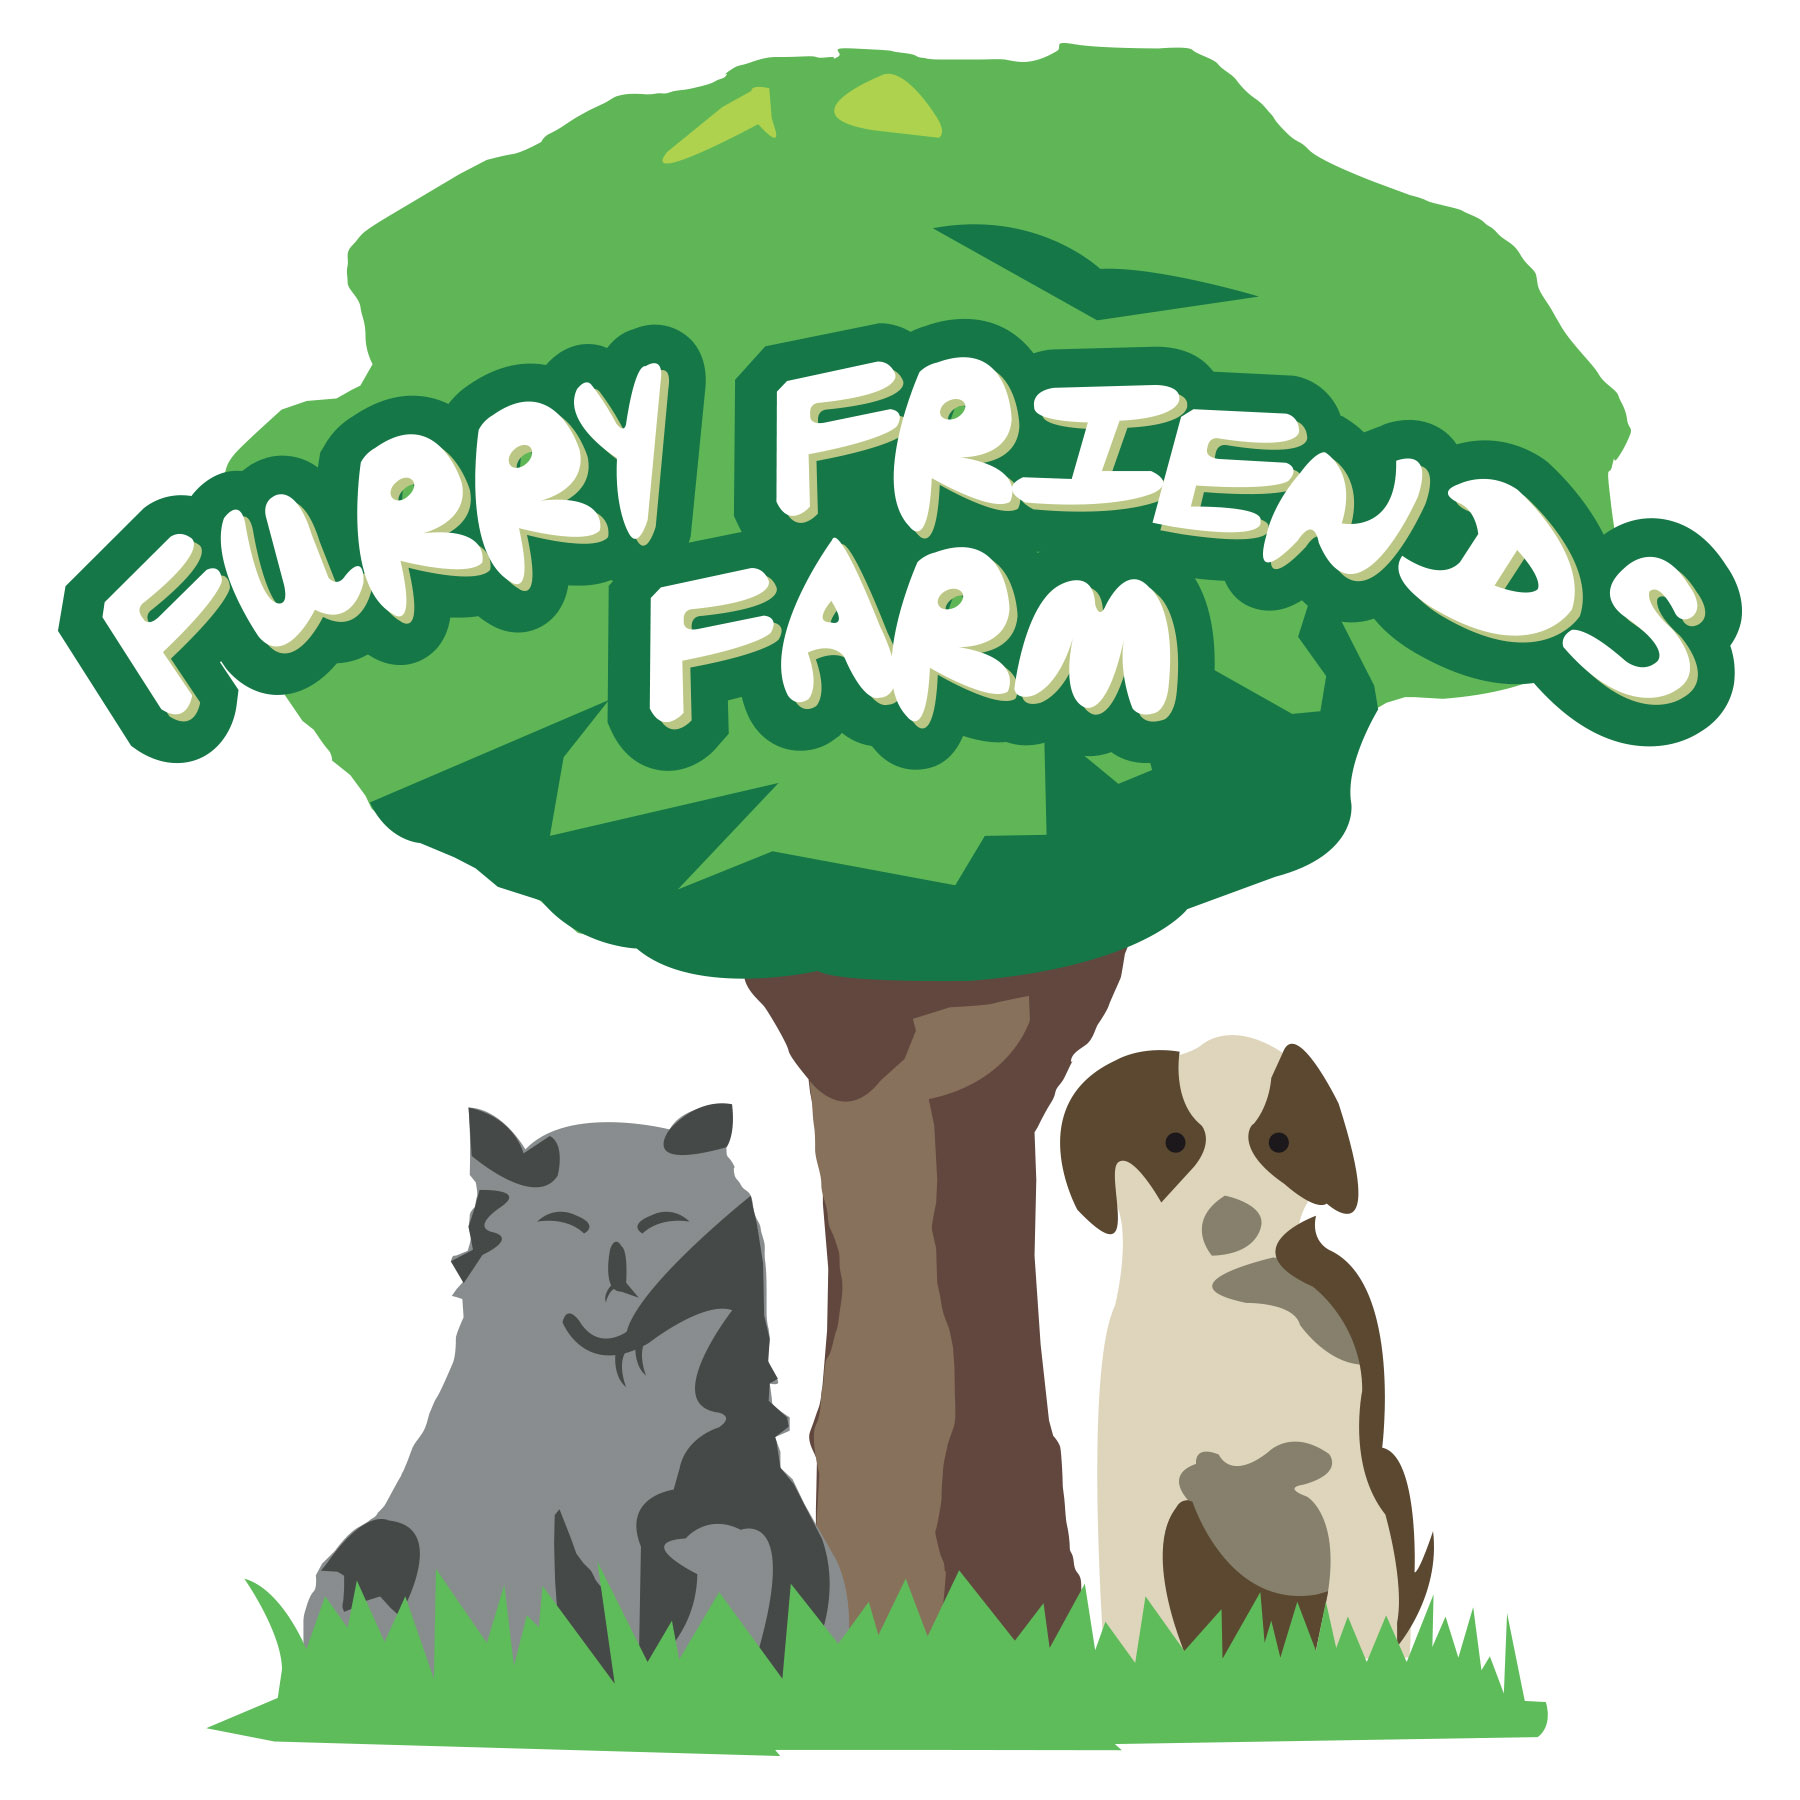 Furry Friends Farm 2018 Calendar